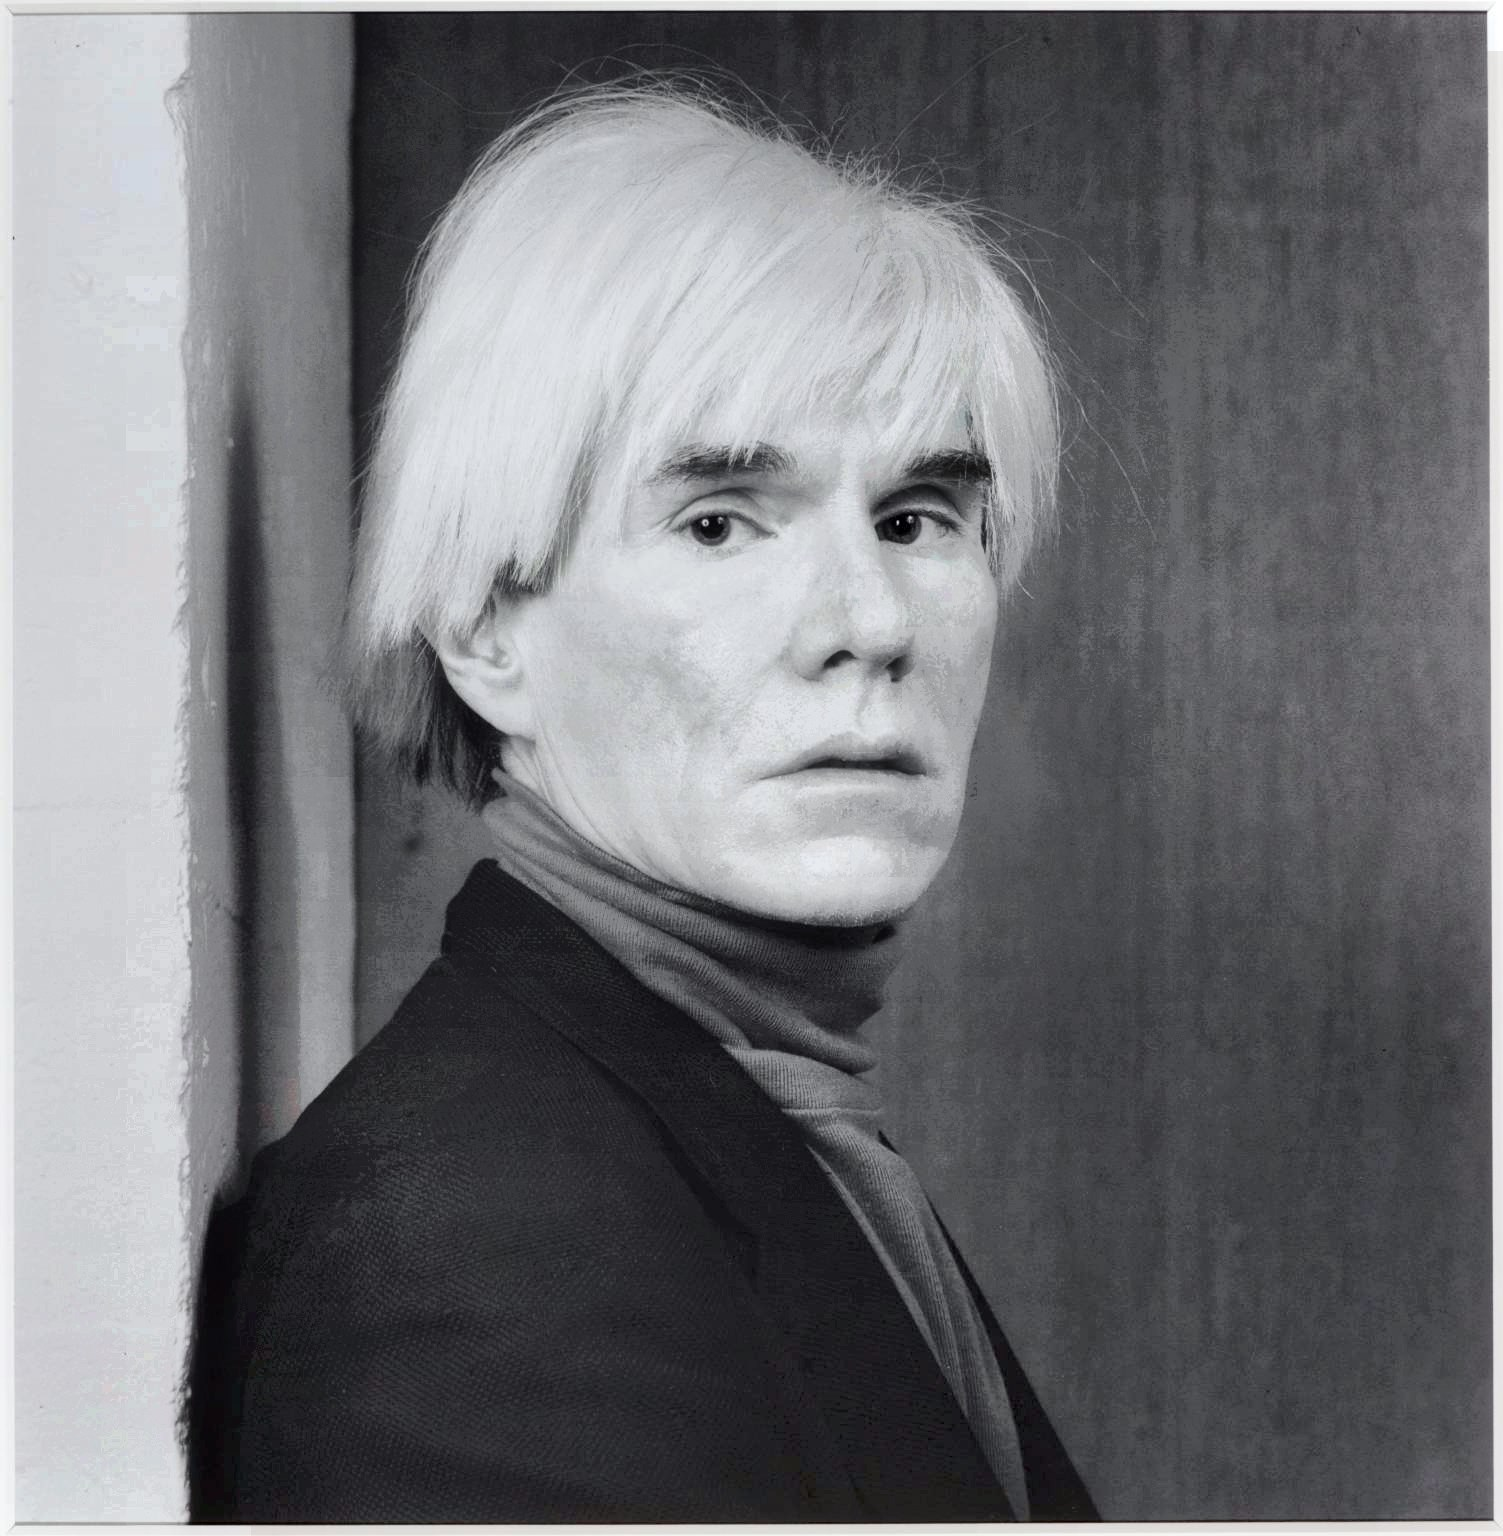 Andy warhol known people famous people news and for Andy warhol famous works